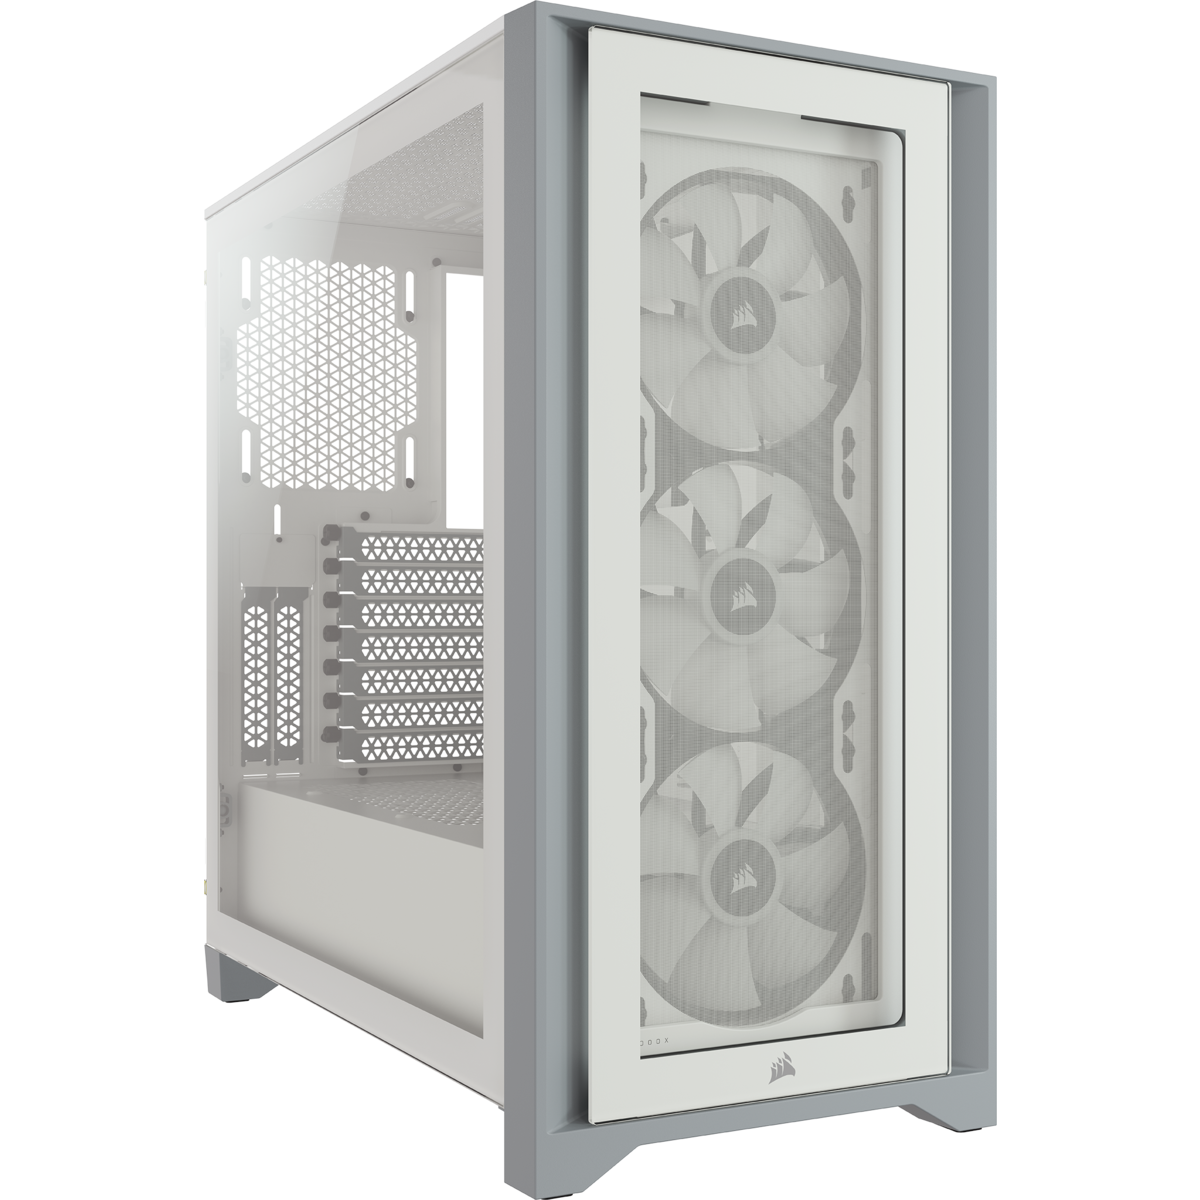 Corsair iCUE 4000X RGB Tempered Glass Mid-Tower ATX Case — White 16